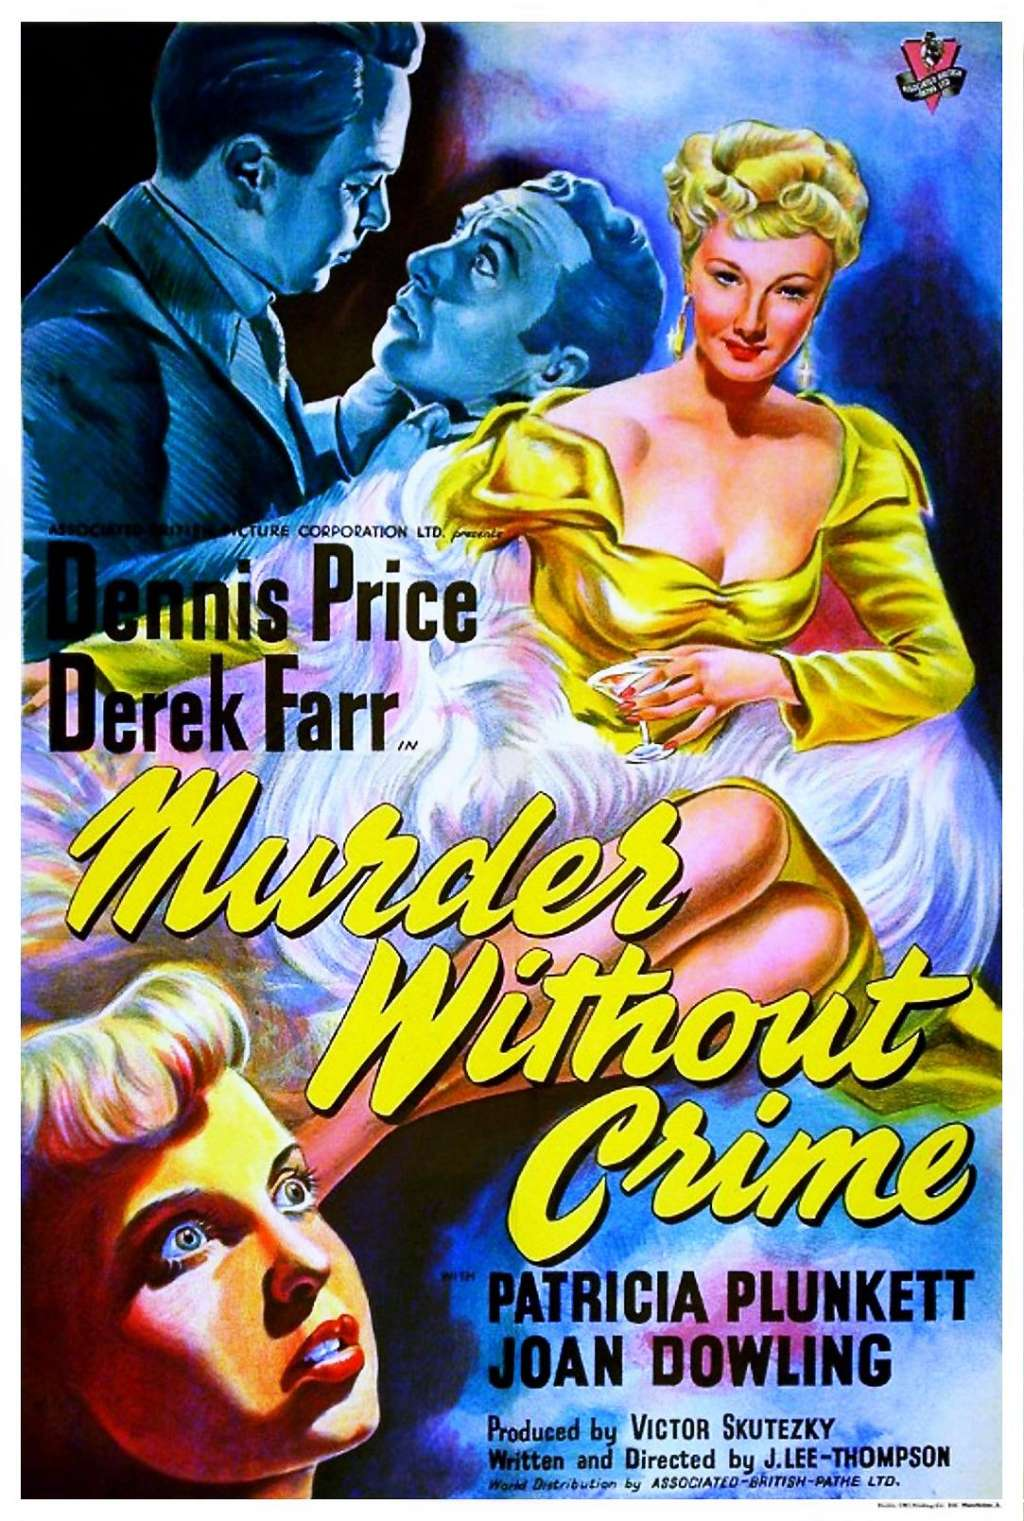 Murder Without Crime kapak